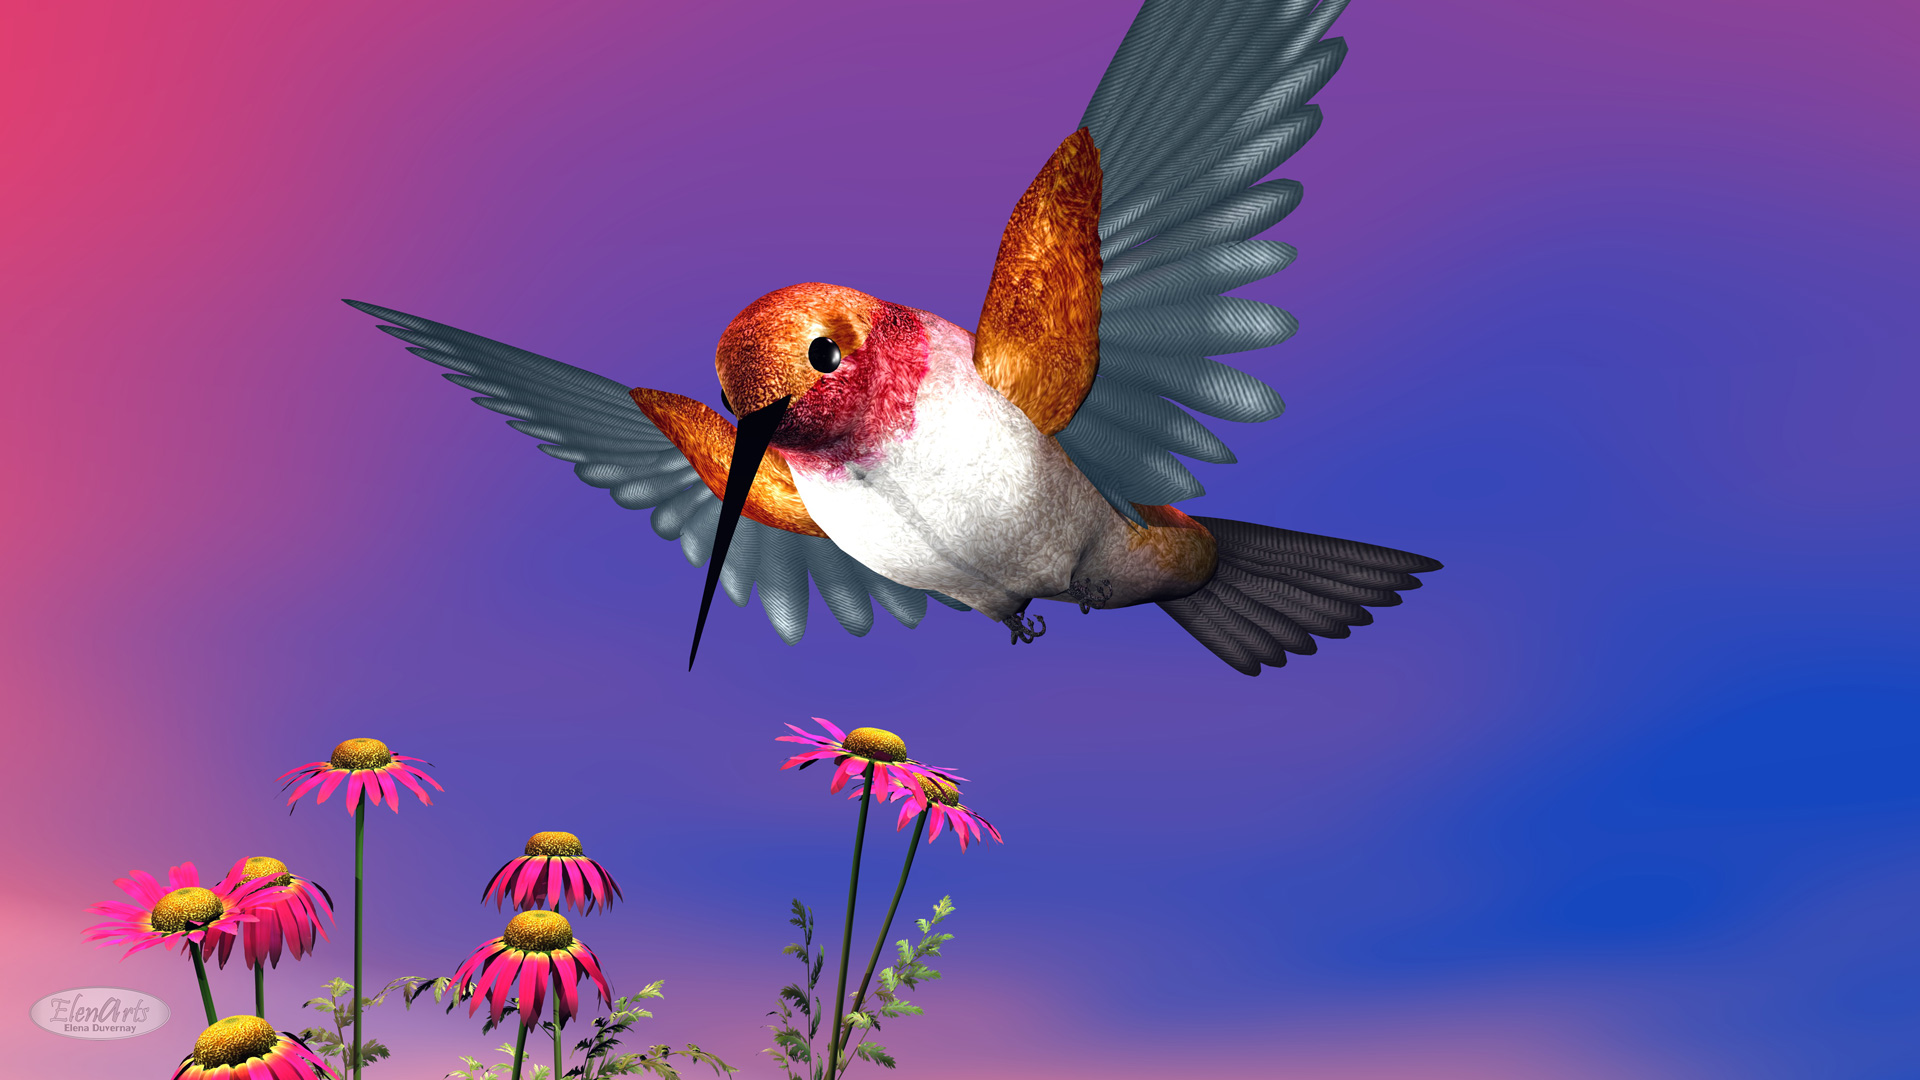 Rufous hummingbird flying upon red daisies by cloudy day – 3D render